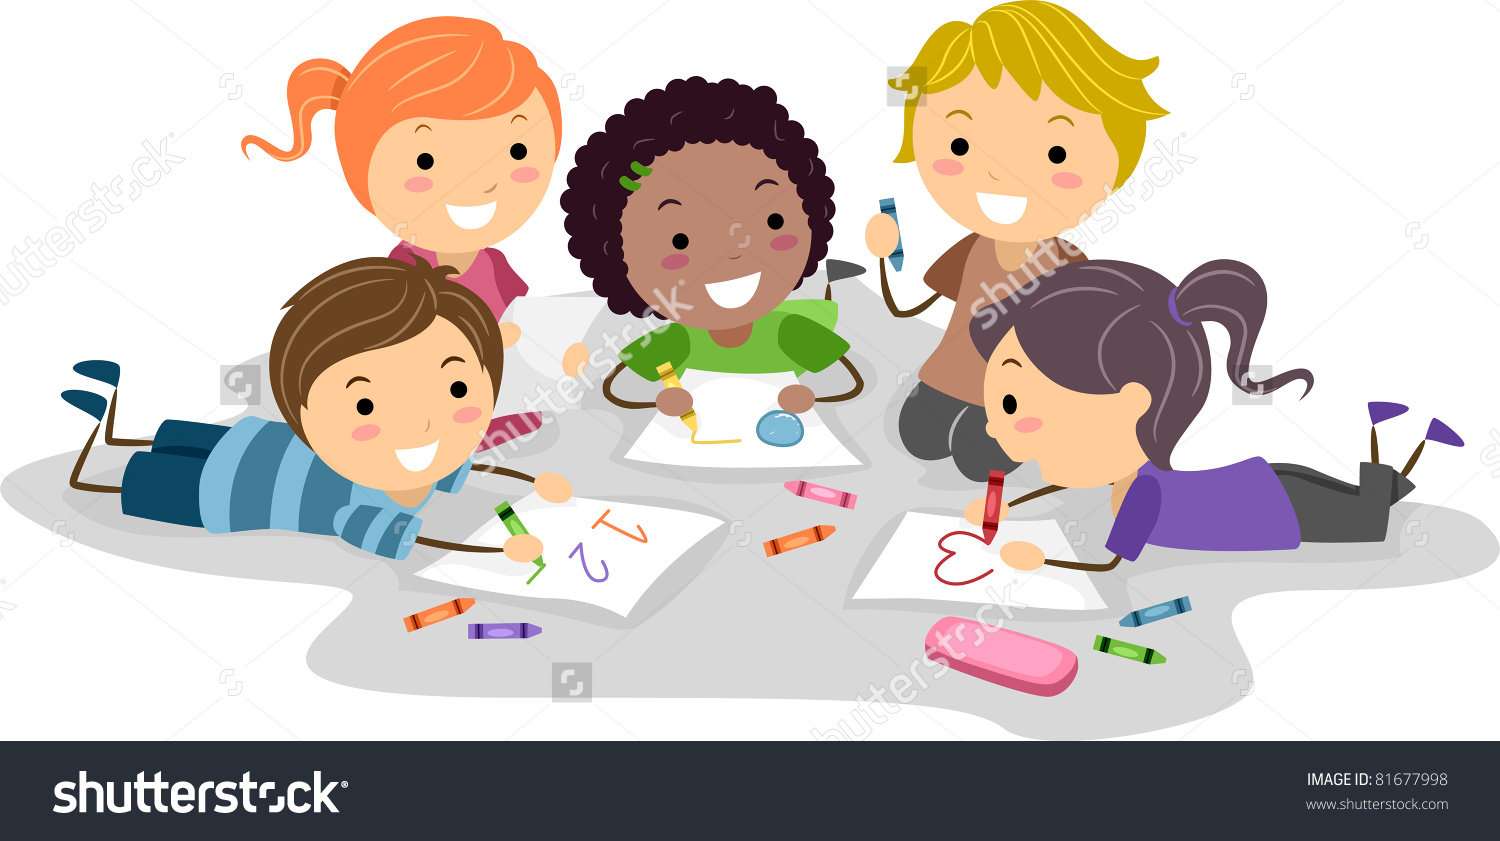 Children drawing clipart - Clipground